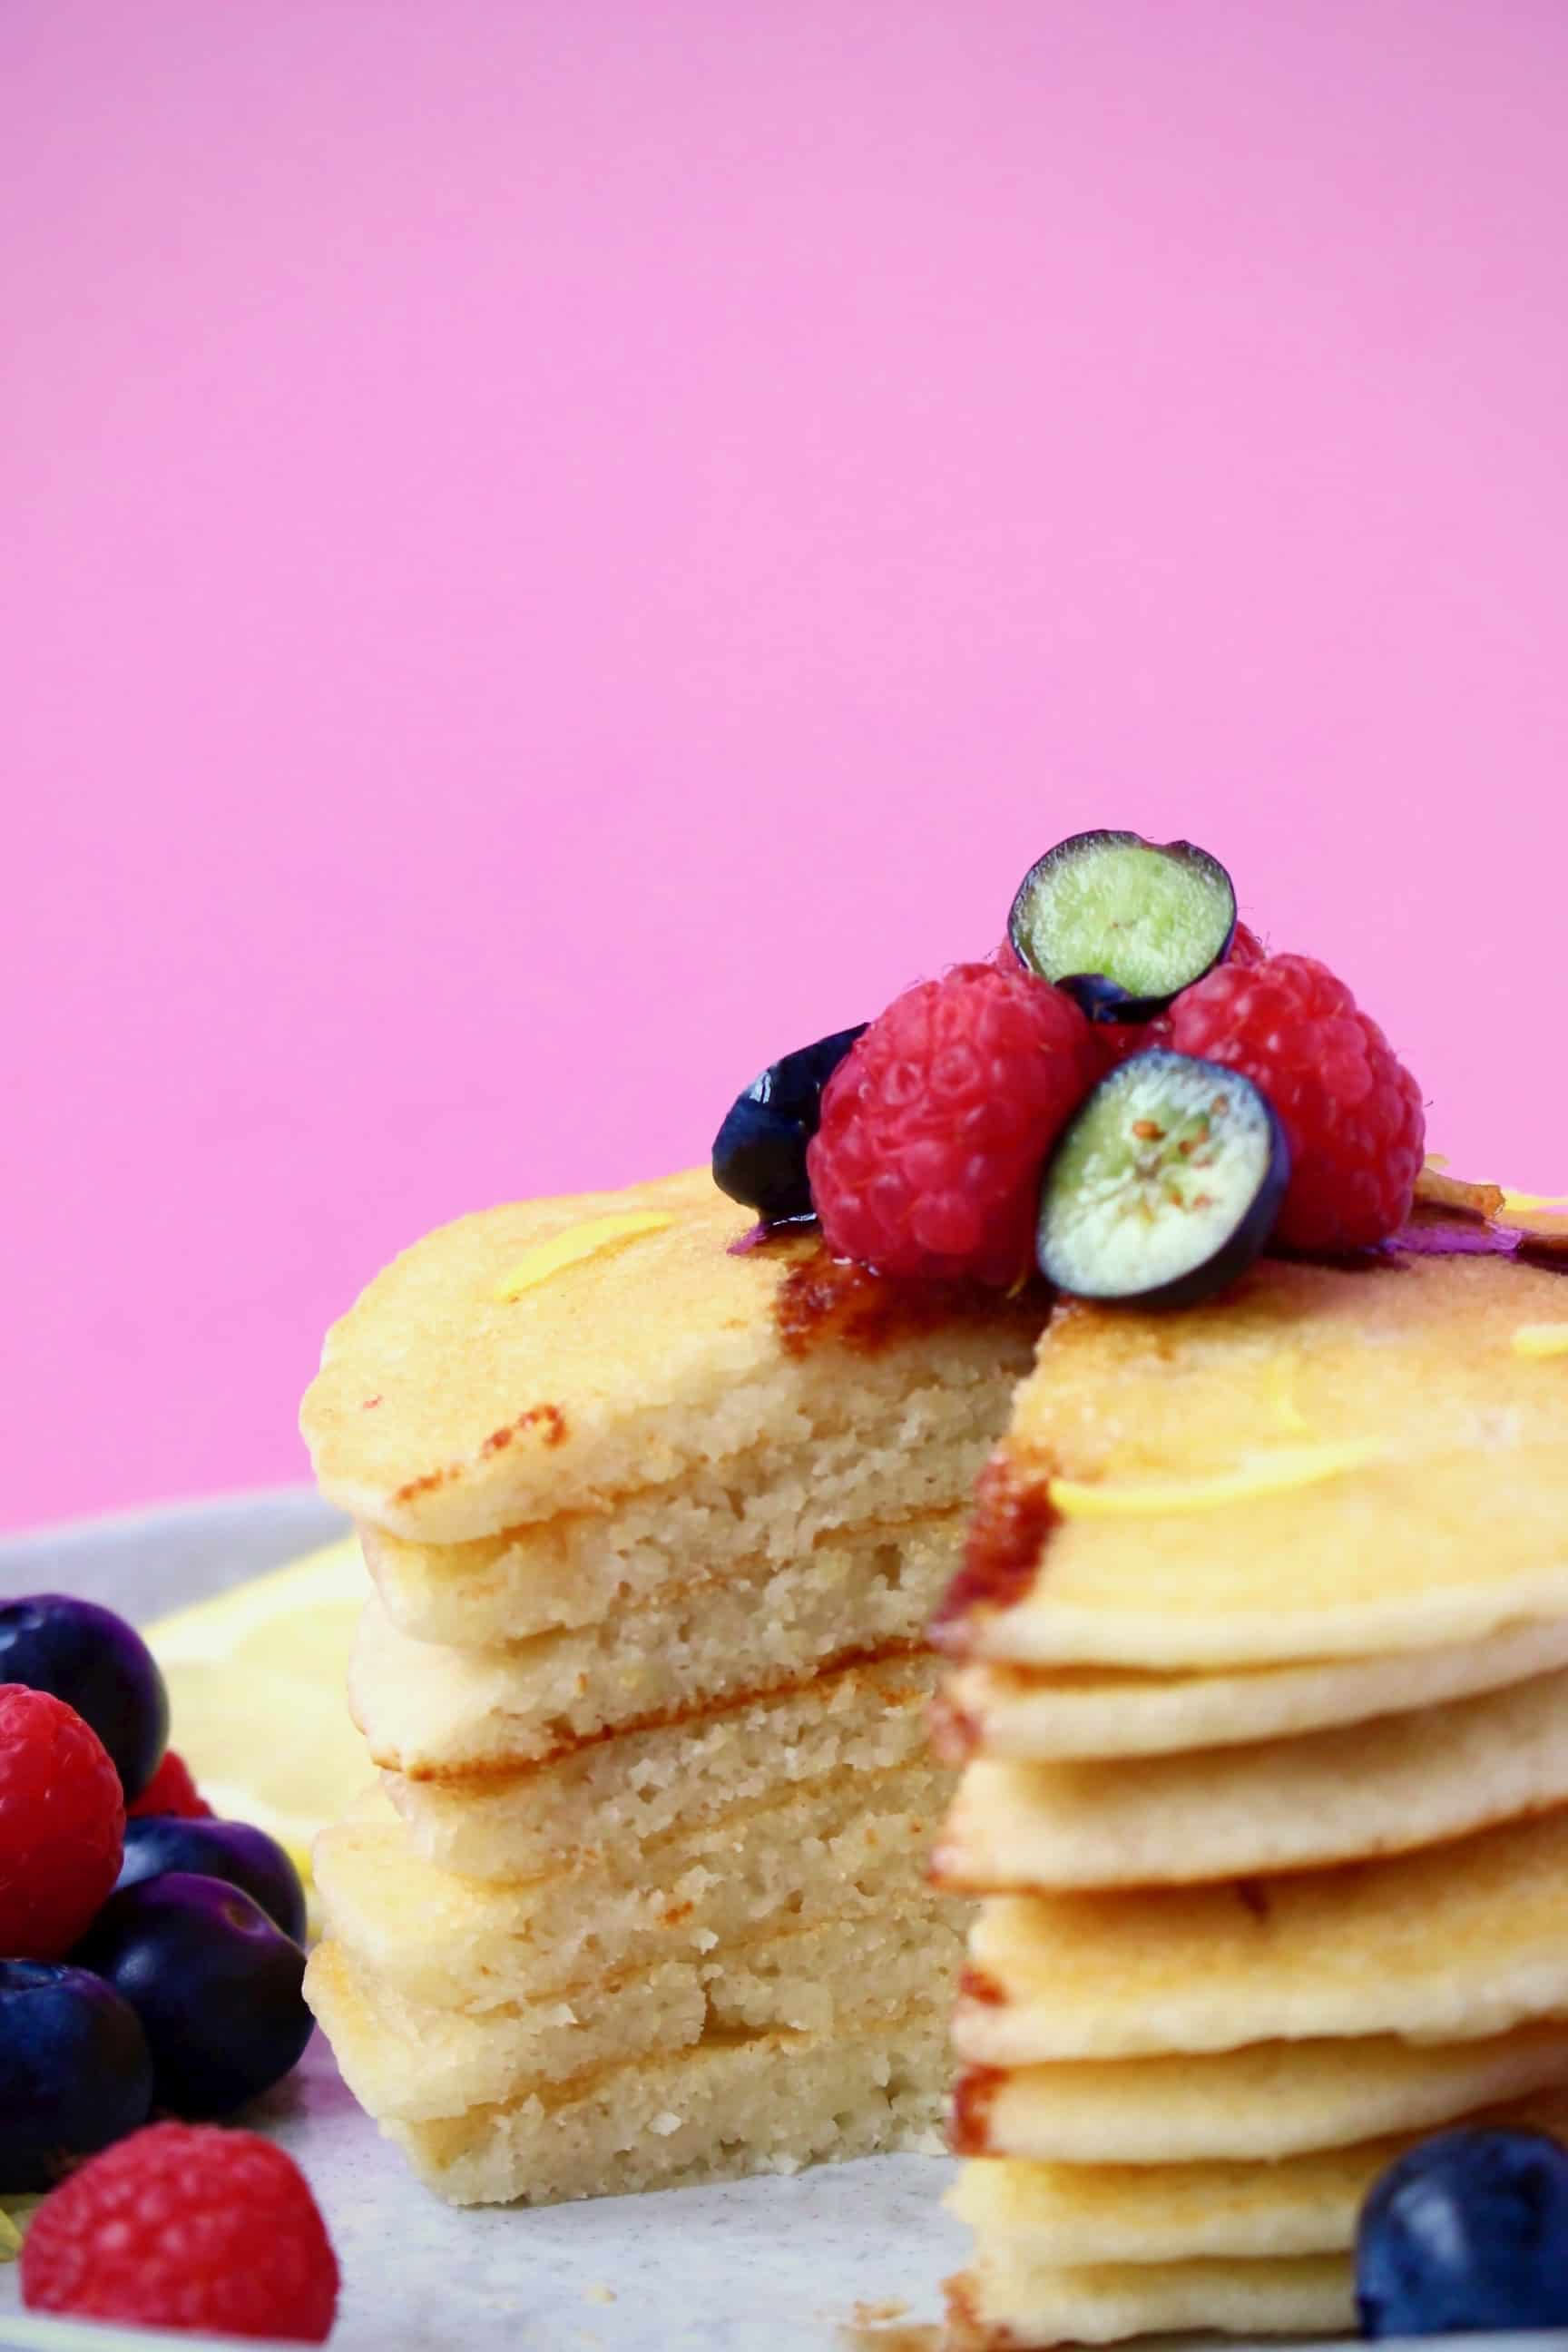 A stack of gluten-free vegan pancakes topped with fresh berries